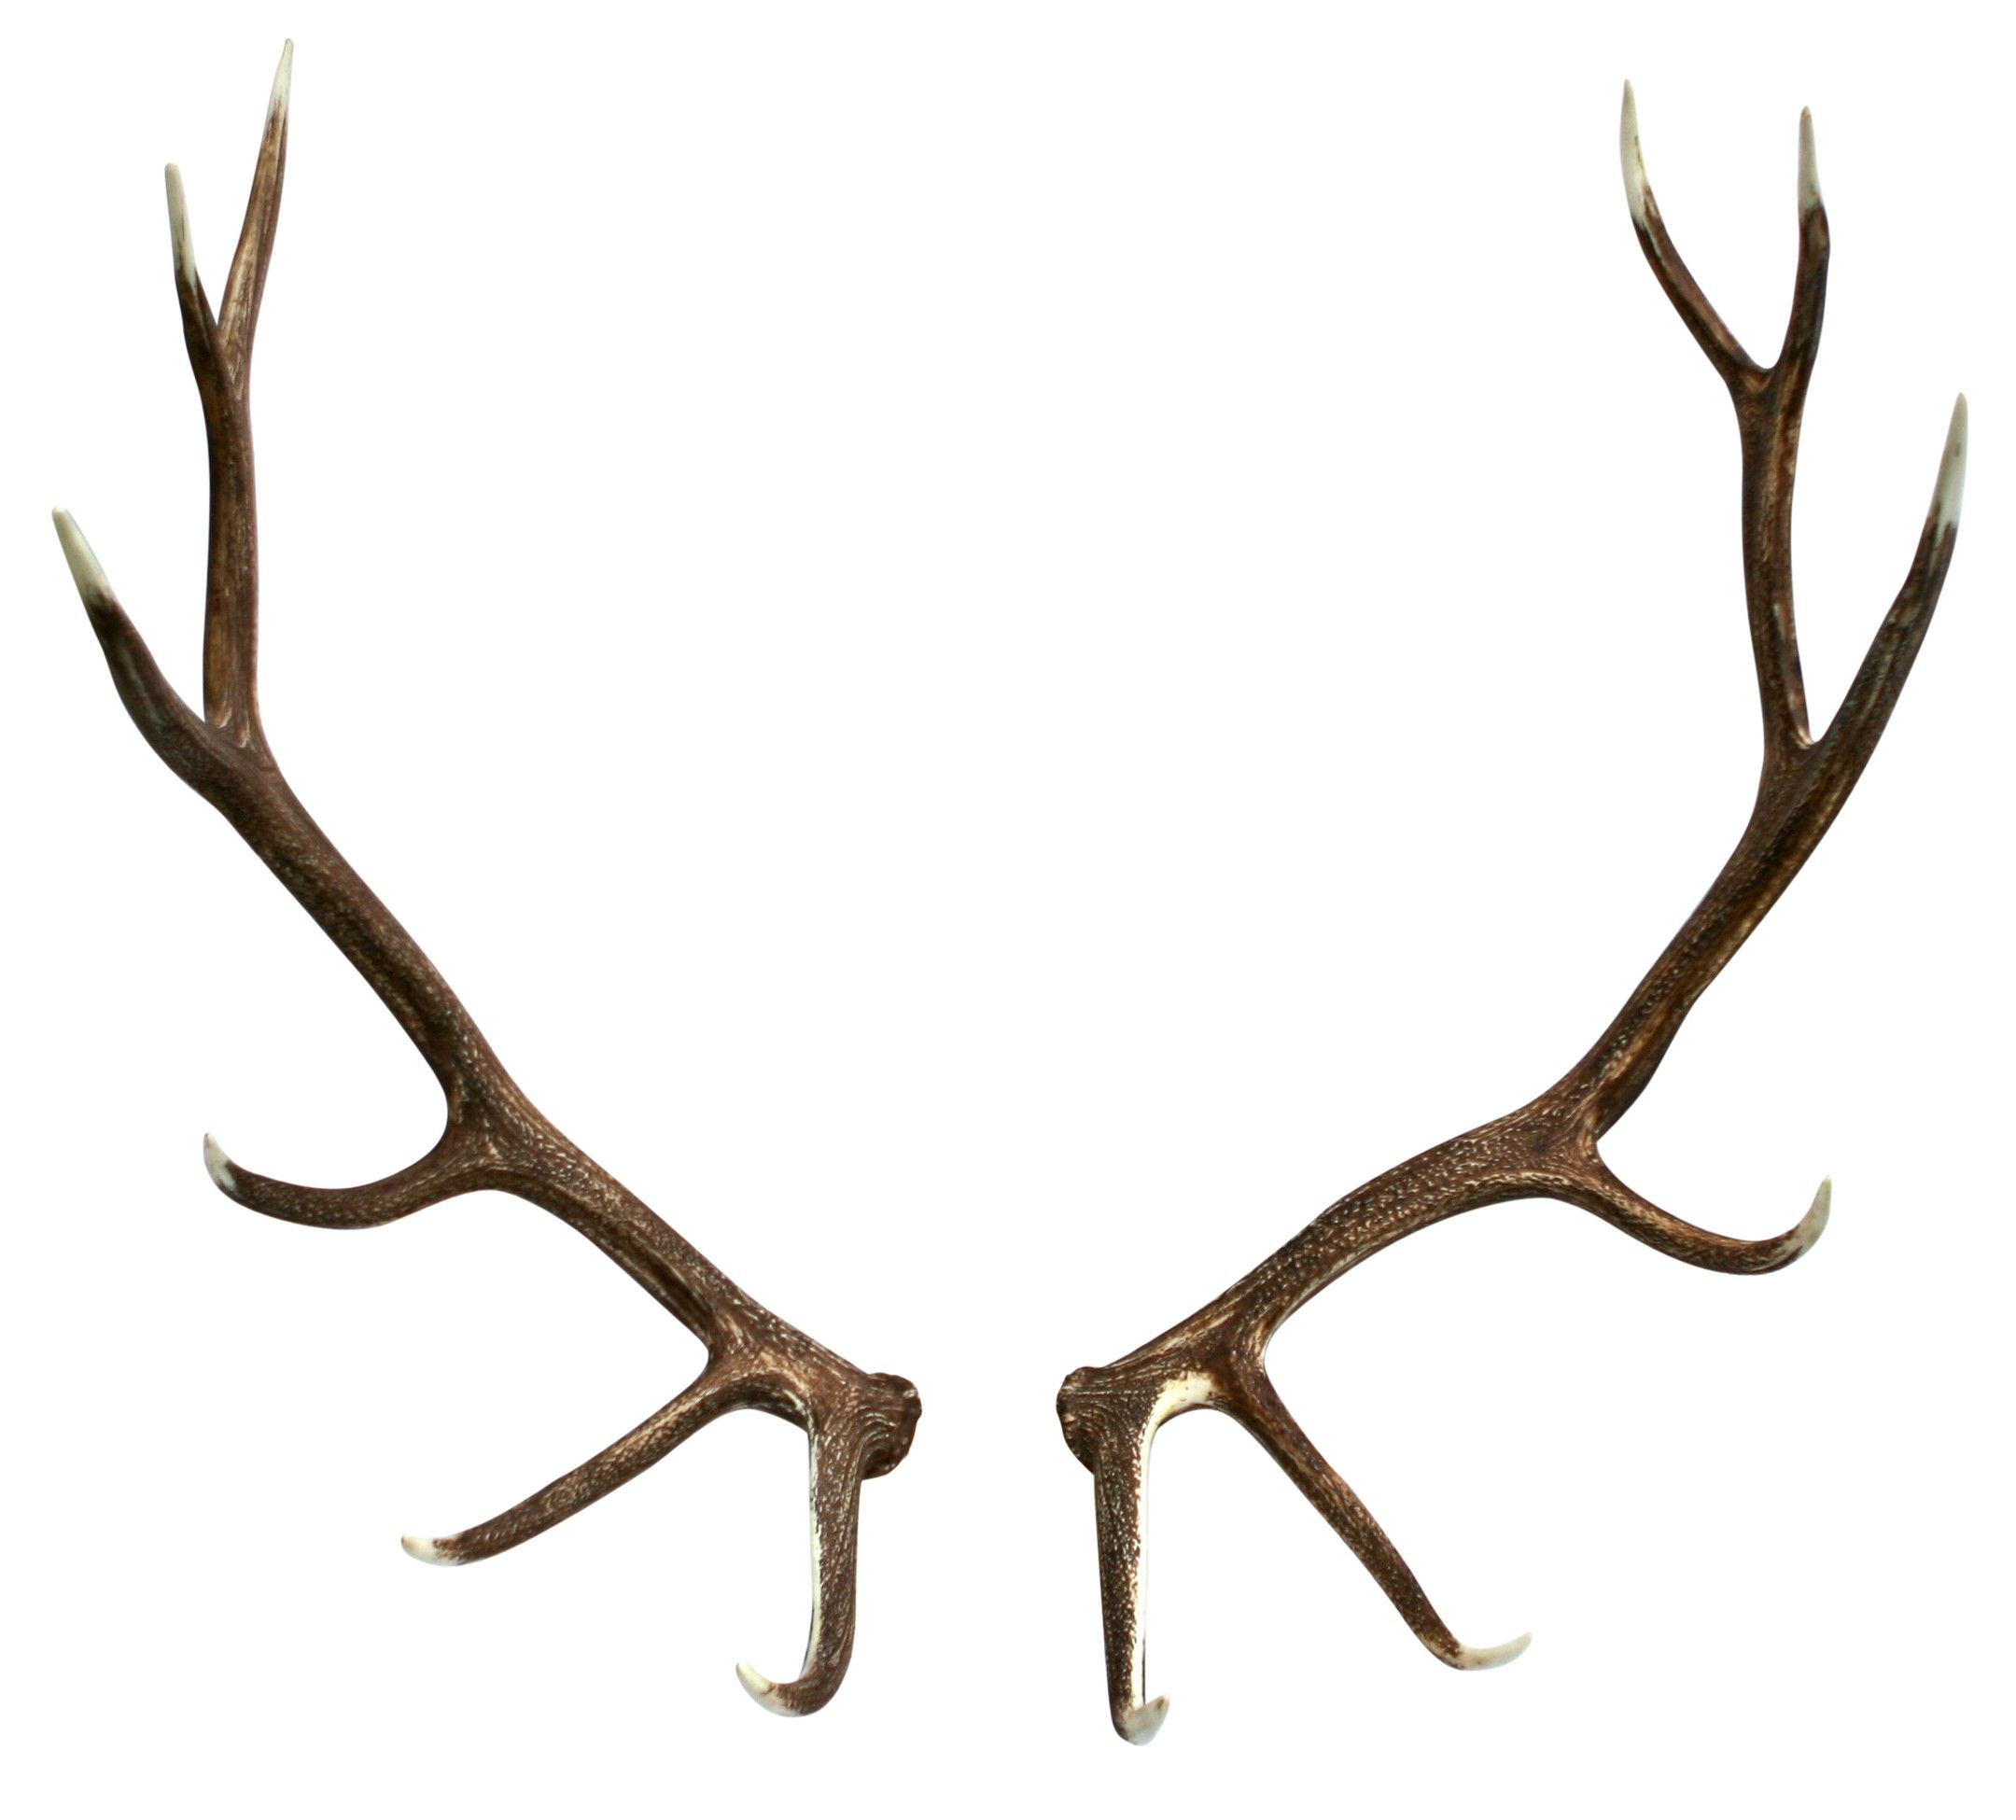 When to look for shaved antlers